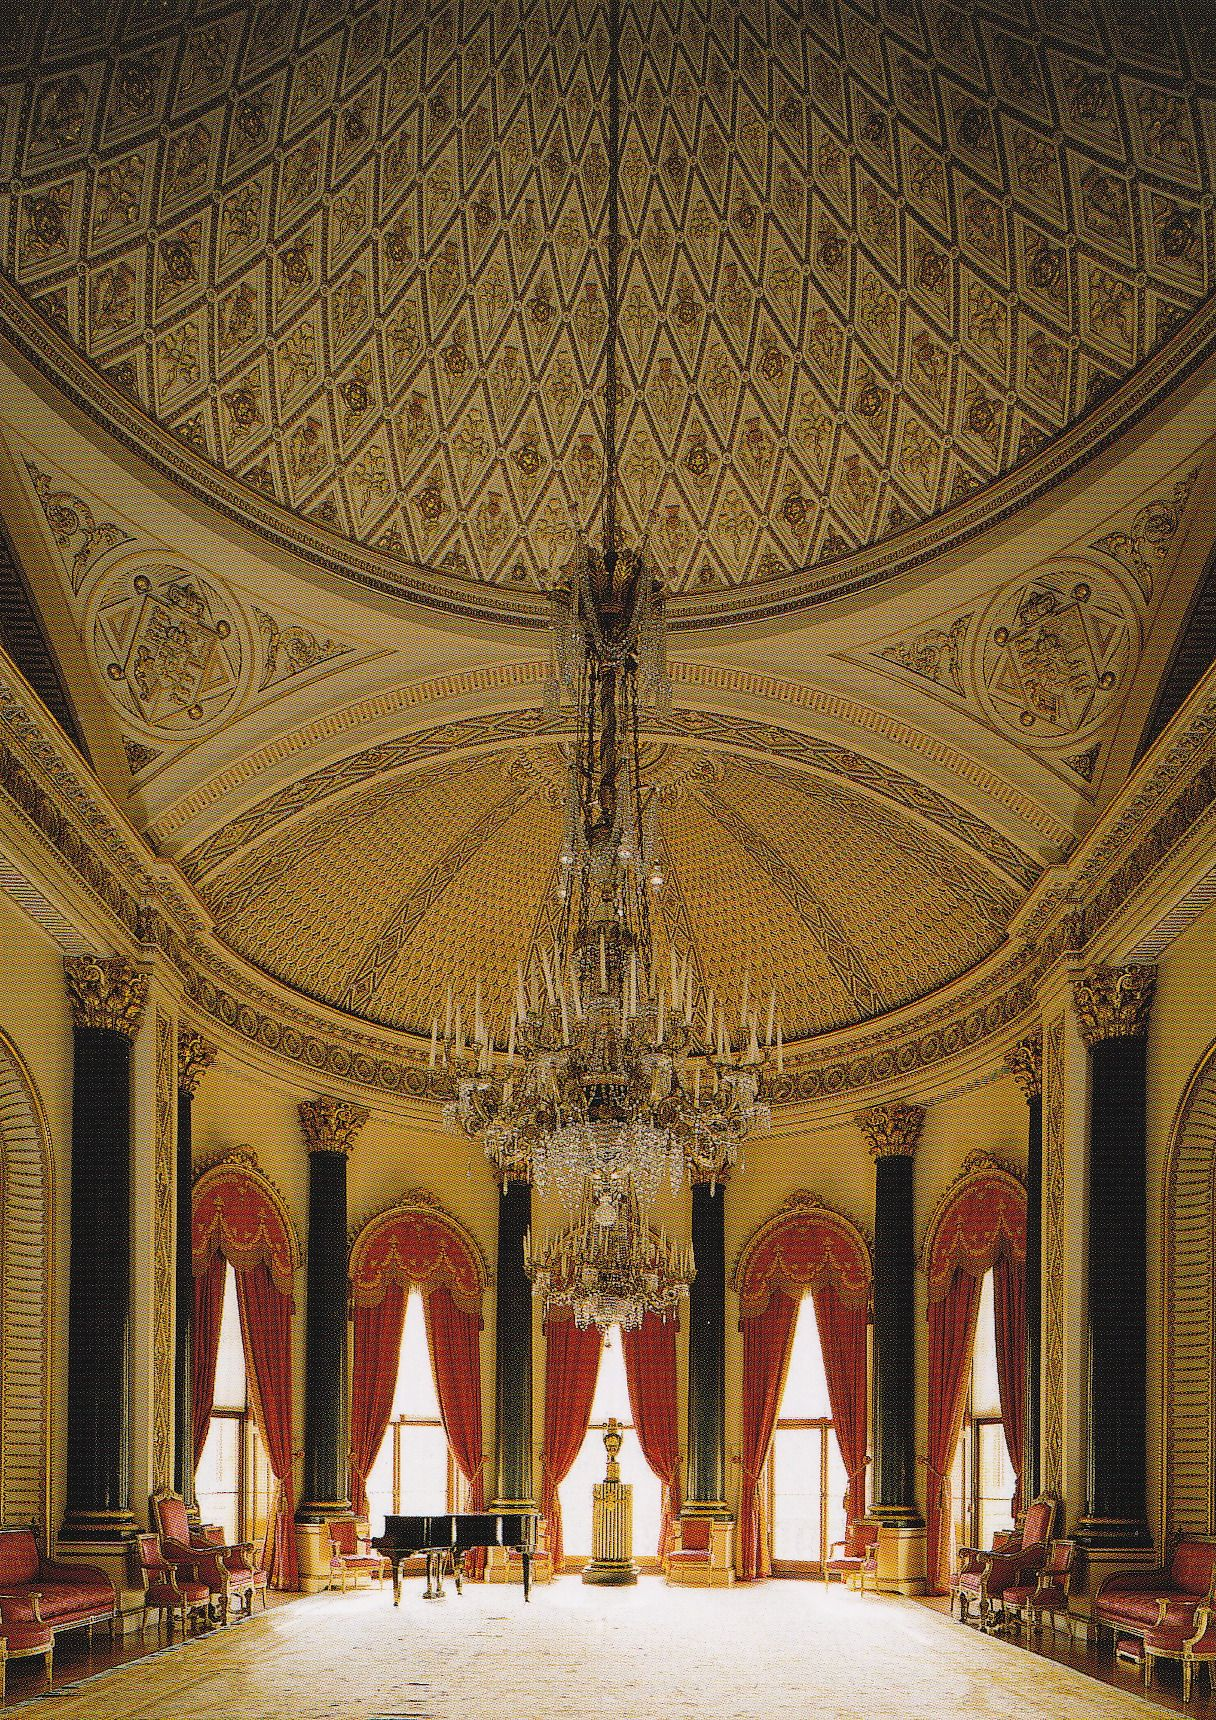 Music Room Buckingham Palace. Royal baptisms take place here